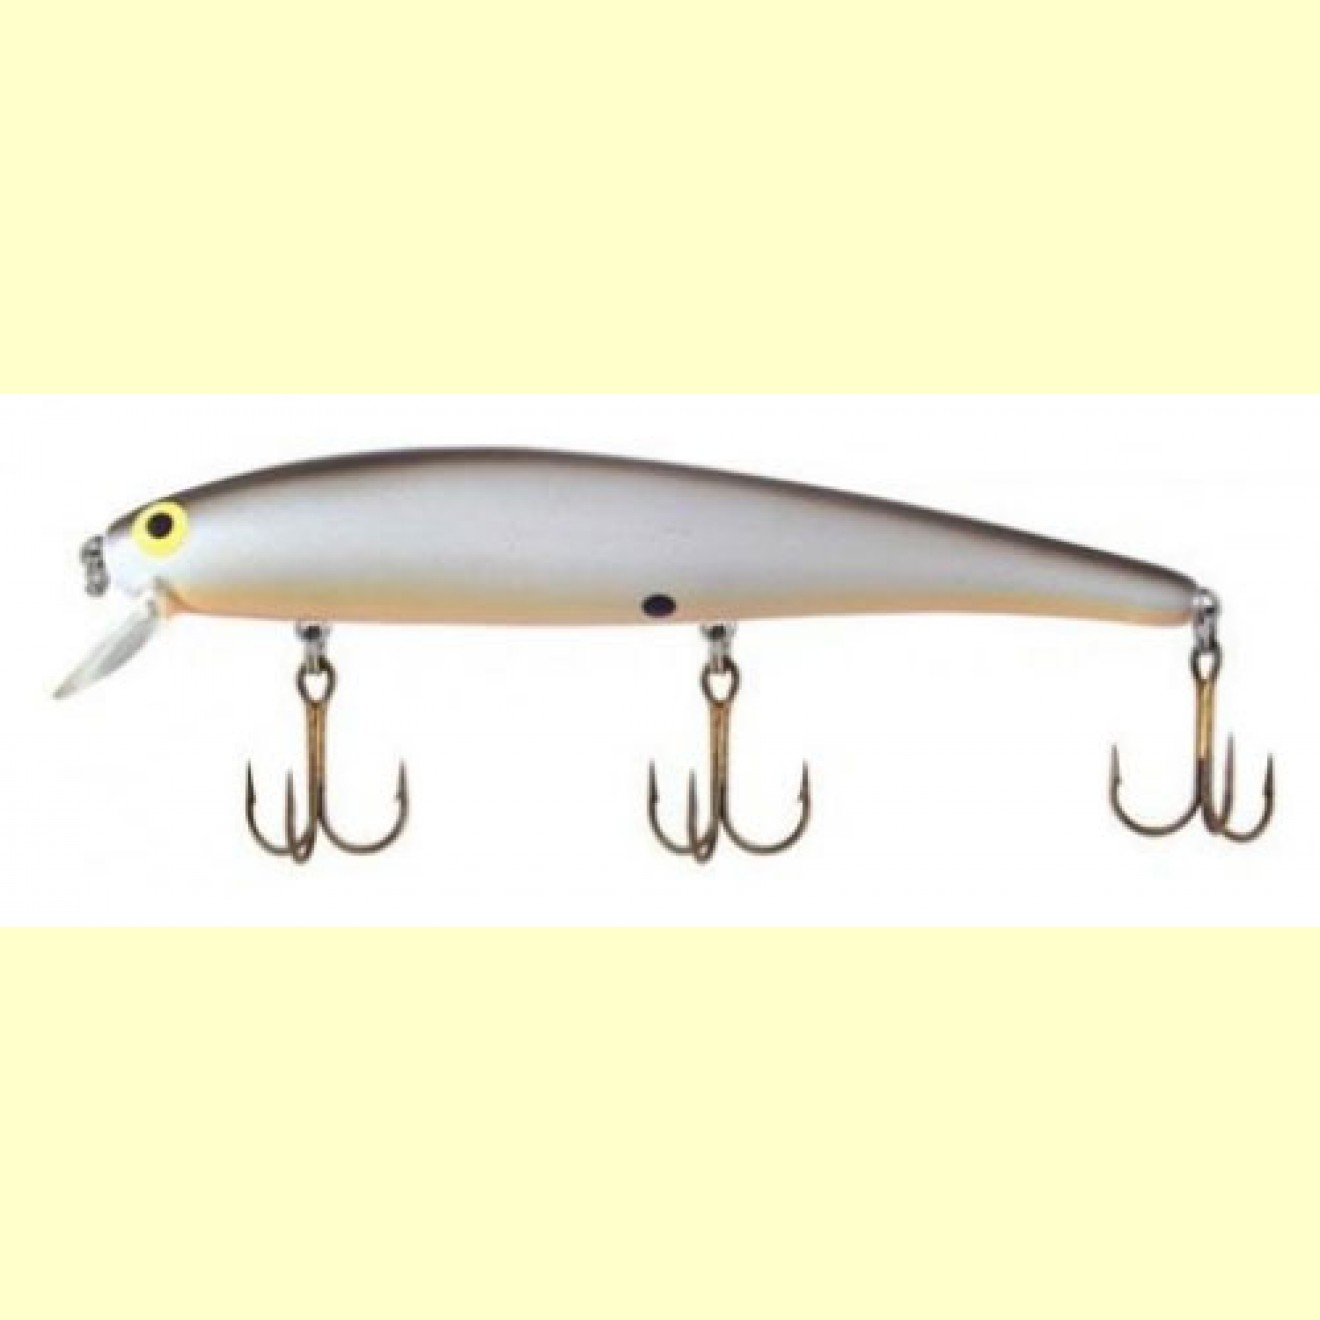 Long A 11,5 - Pearl / Black Back OB - Bomber Lures